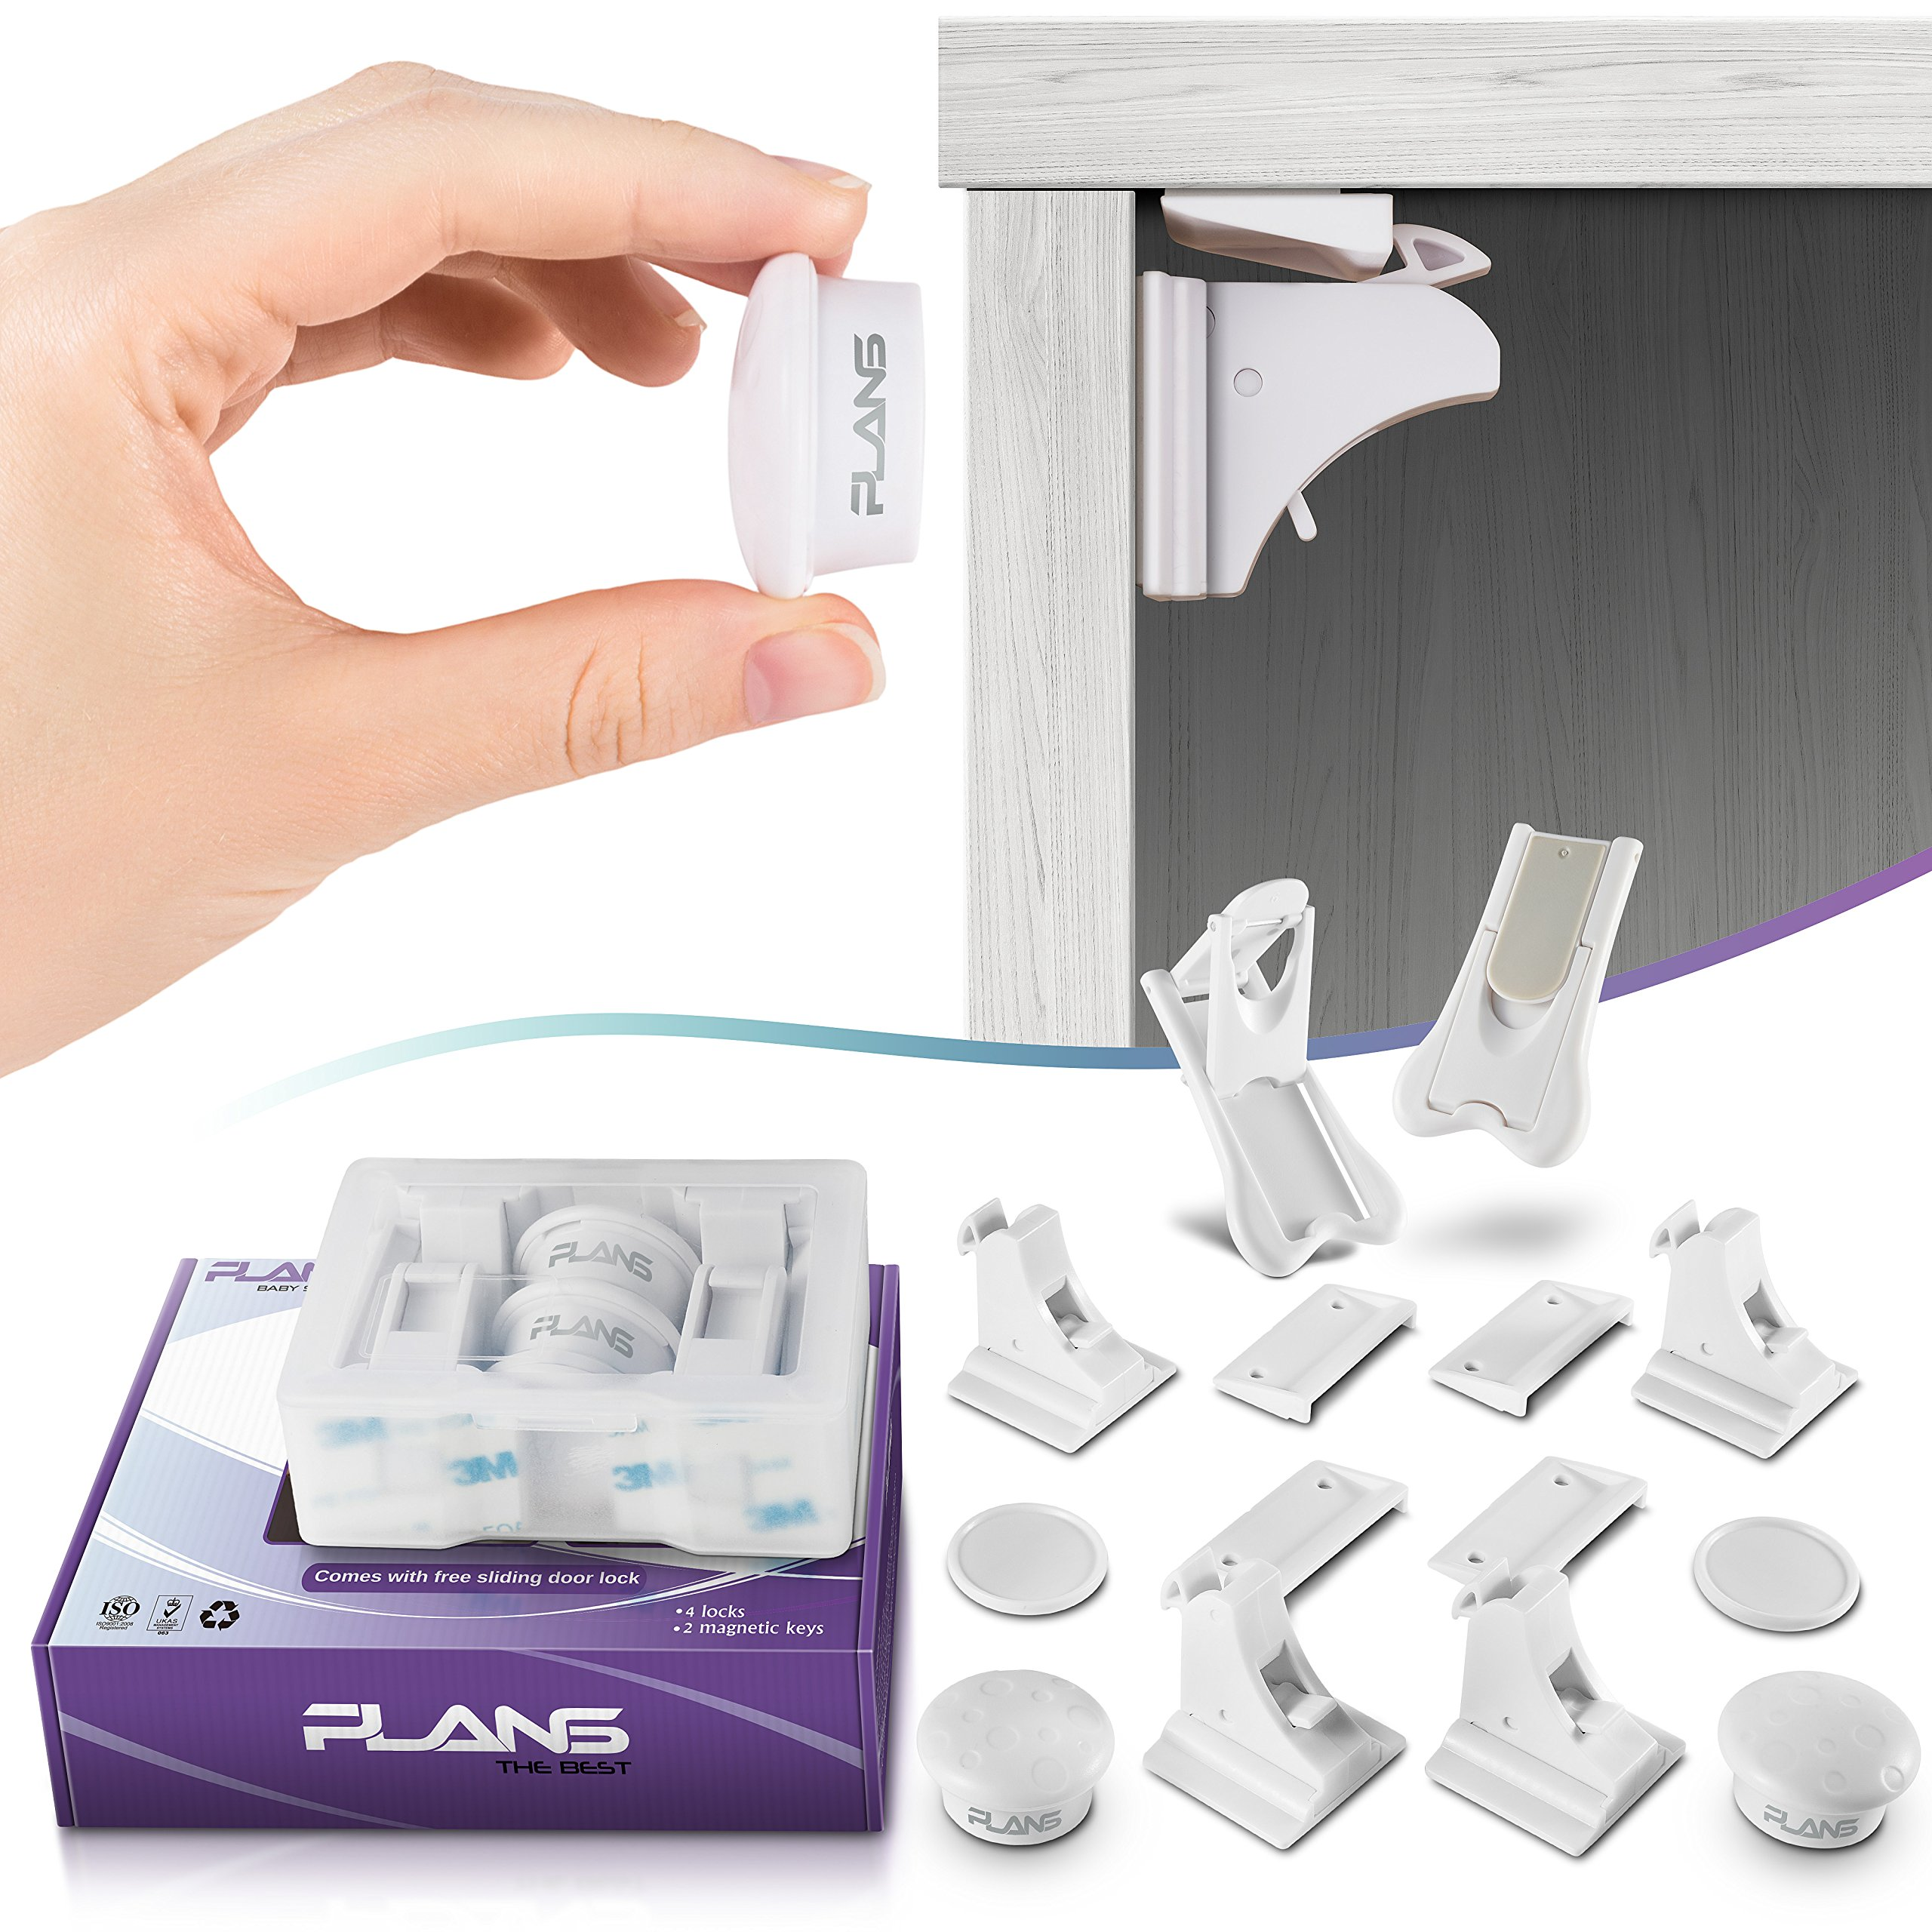 Plans Best Baby Safety Magnetic Cabinet Lock Set Child